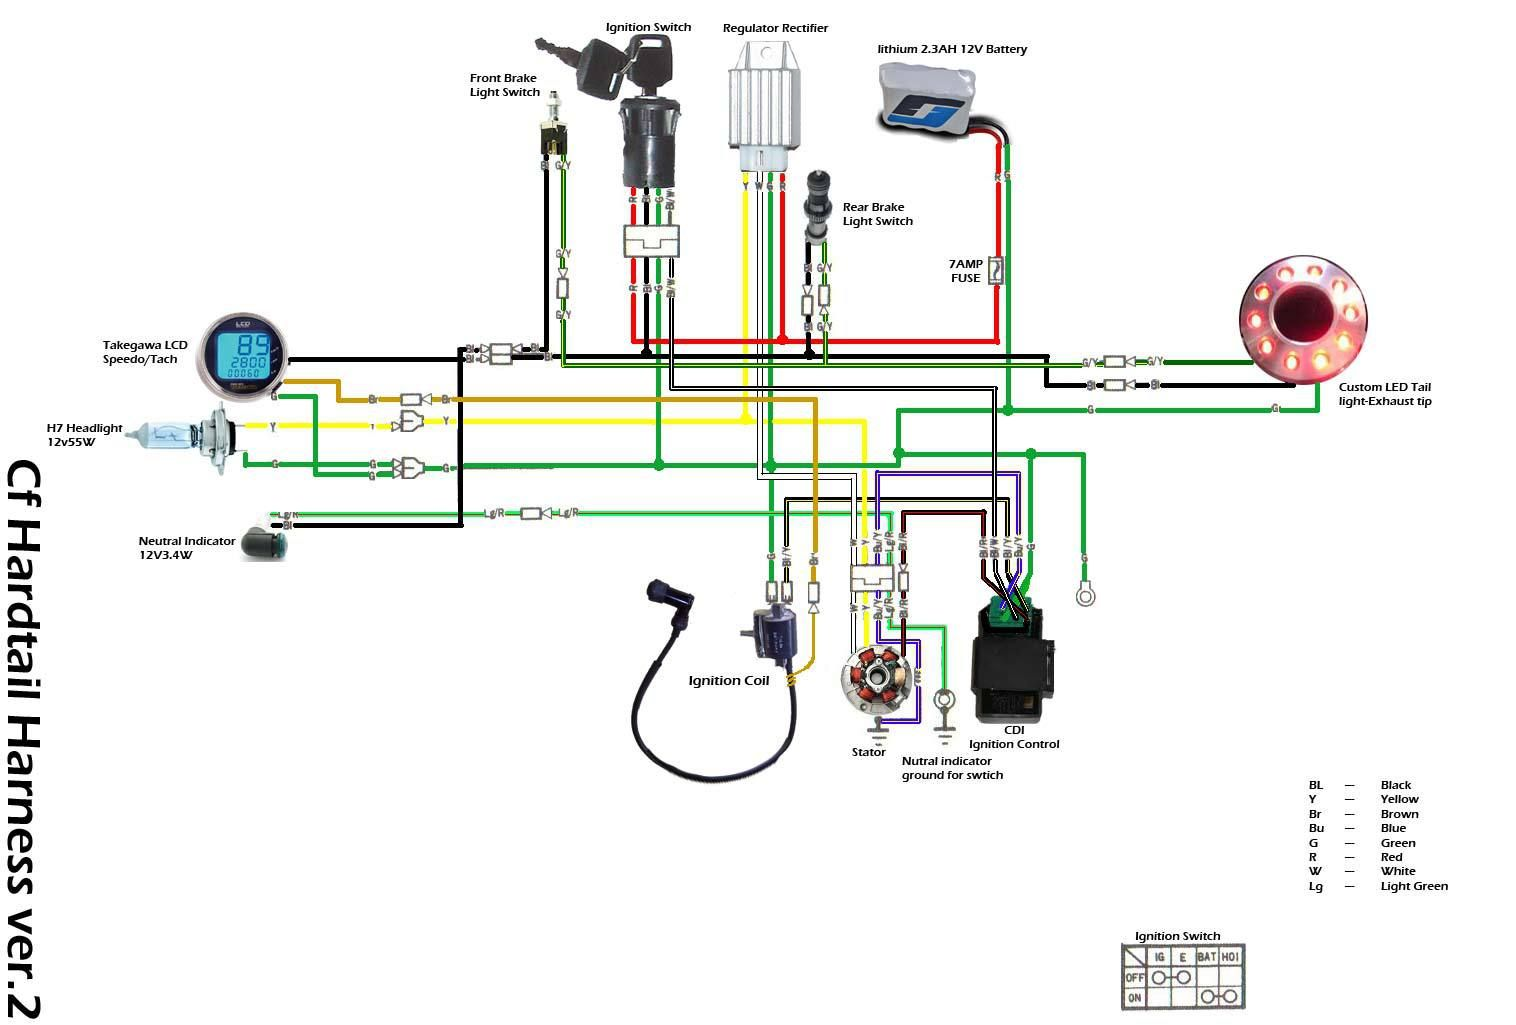 Lance Cdi Ignition Wiring Diagram | Wiring Diagram on